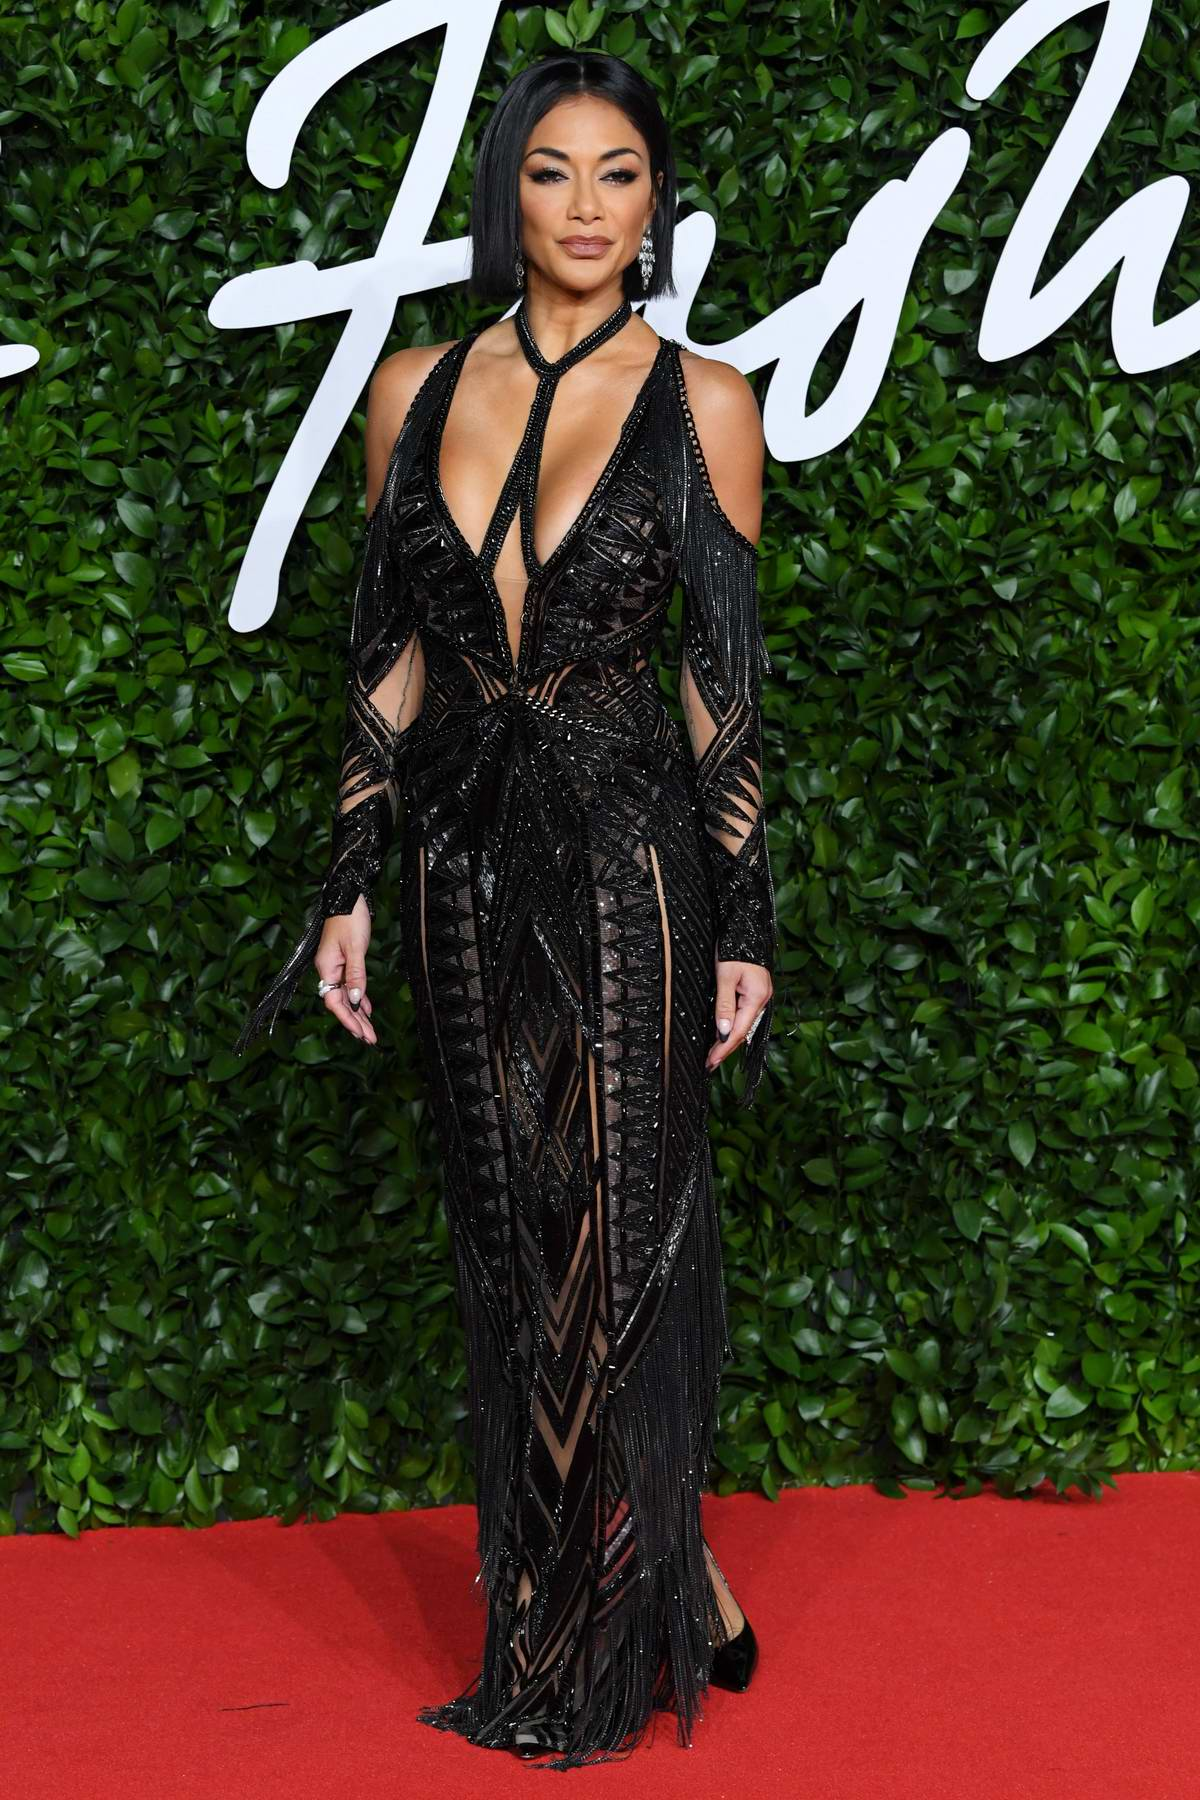 Nicole Scherzinger attends The Fashion Awards 2019 held at Royal Albert Hall in London, UK